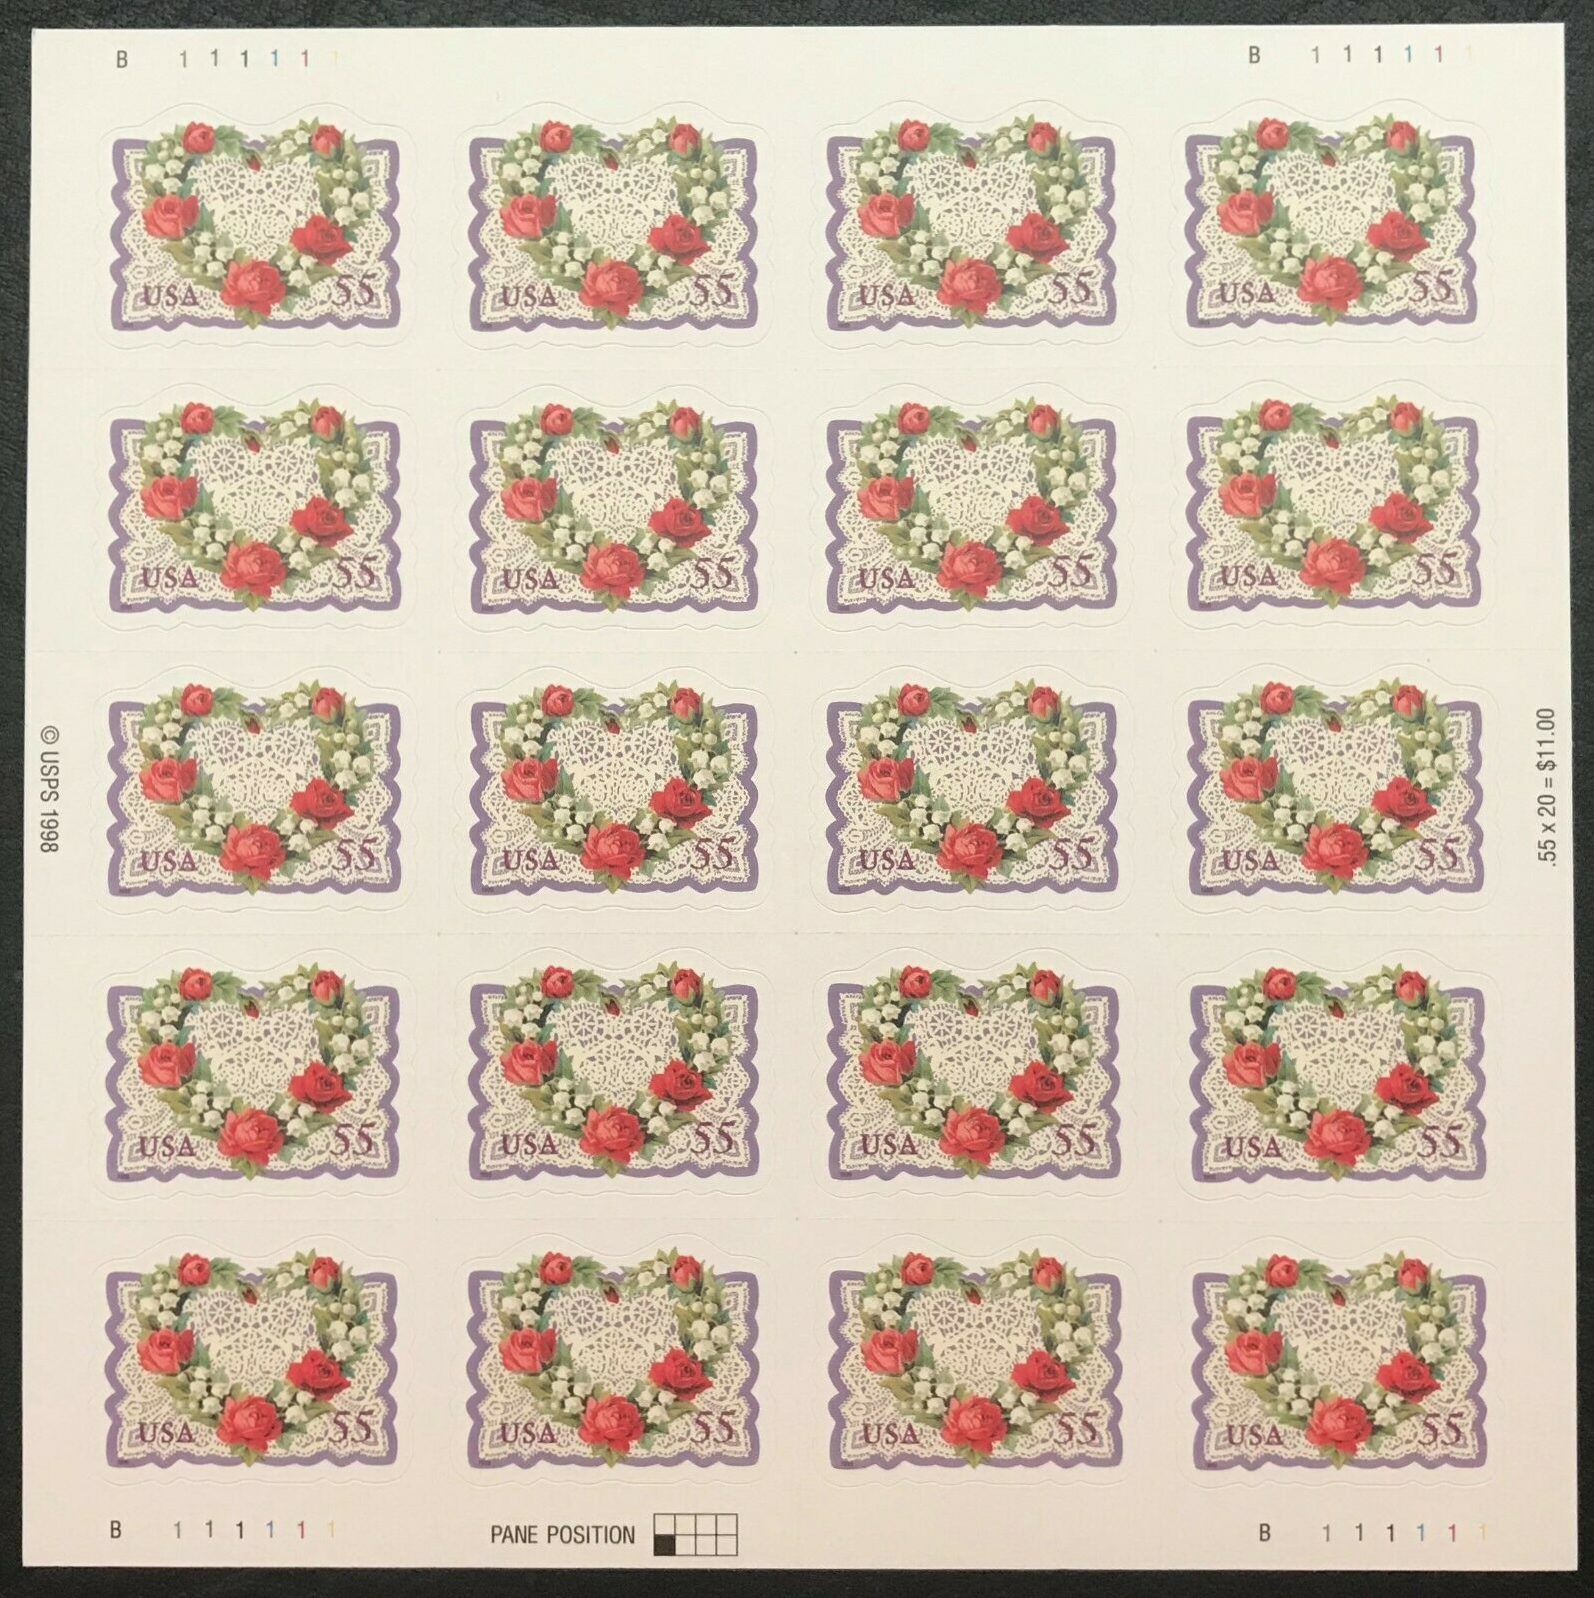 "Scott 3275, Pane of 20 (55 cents) <p> <a href=""/images/USA-Scott-3275-Sheet.jpg""><font color=green><b>View the image</a></b></font>"